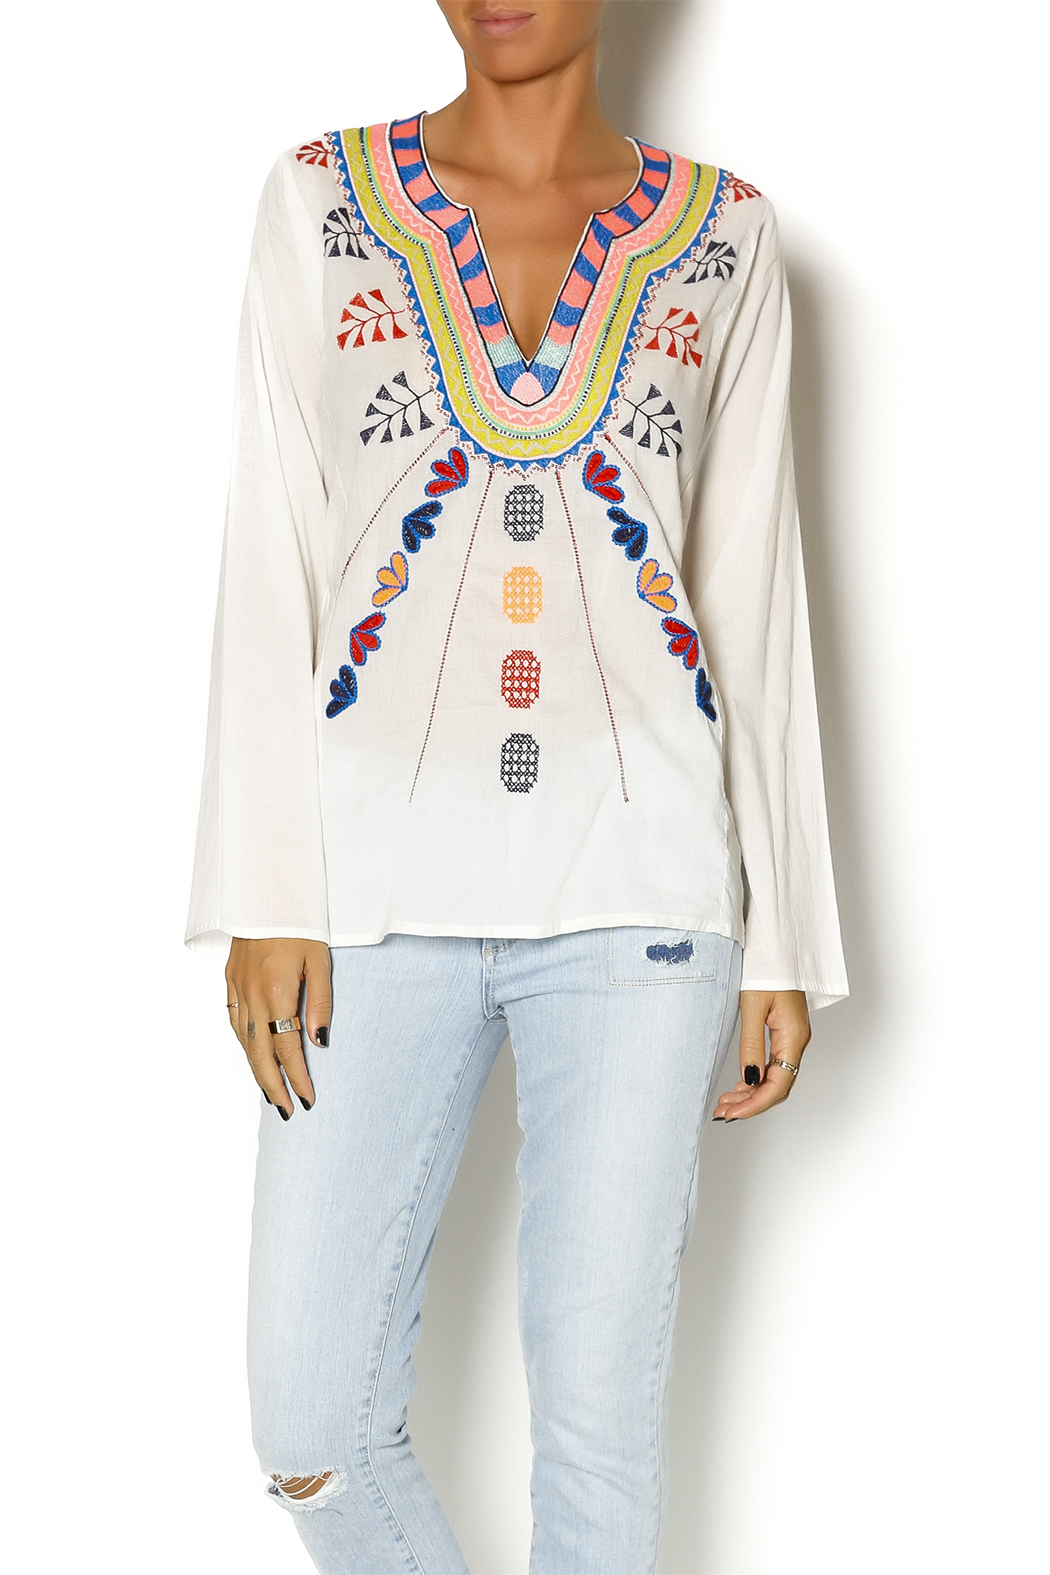 Christophe Sauvat Embroidered Ethnic Top - Main Image